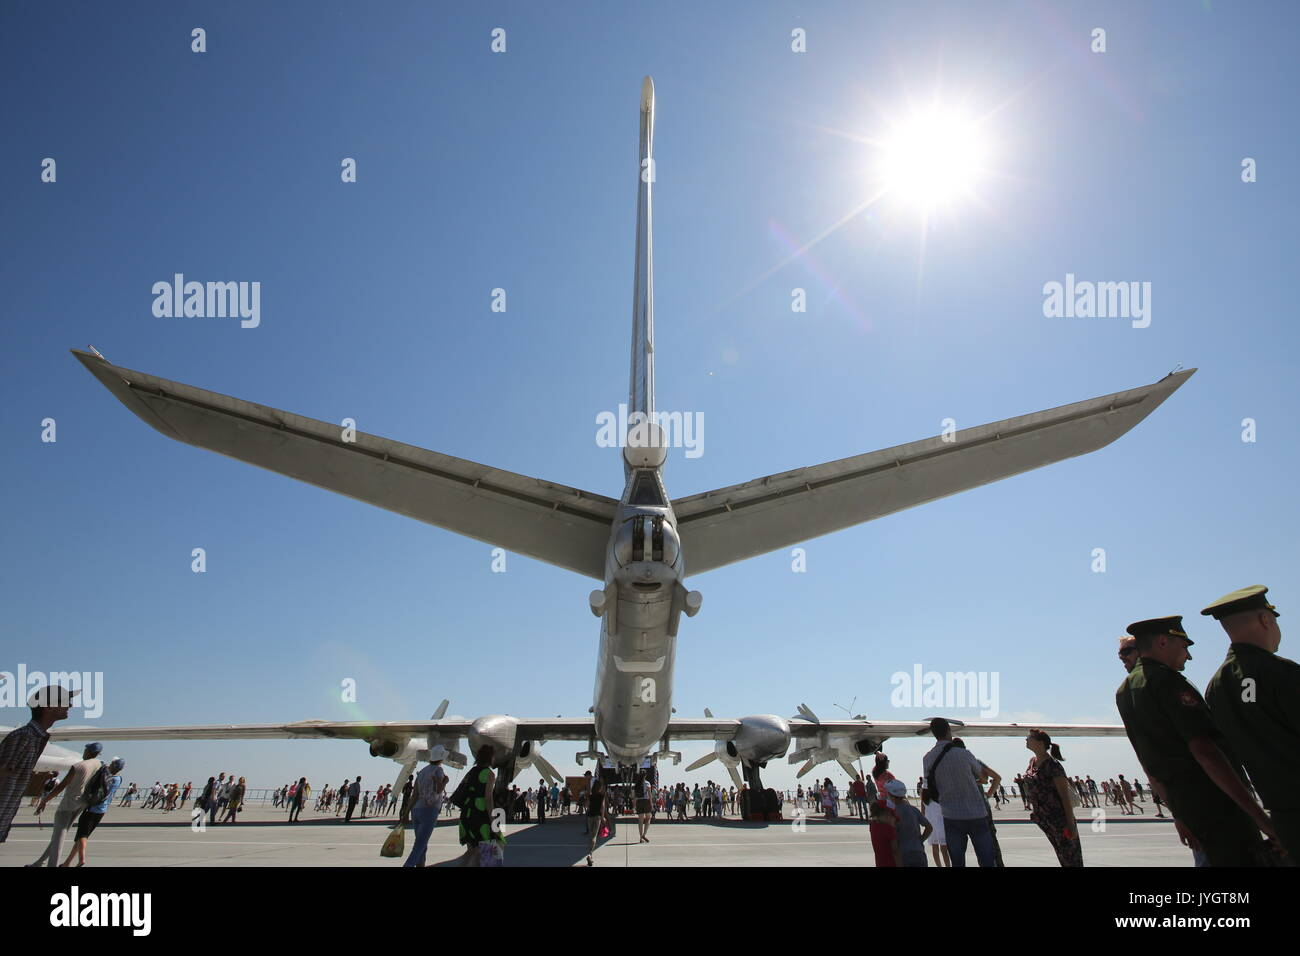 Saratov Region, Russia. 19th Aug, 2017. A Tupolev Tu-95MS four-engine turboprop-powered strategic bomber during an open day at Russia's Engels Air Force Base. Credit: Marina Lystseva/TASS/Alamy Live News - Stock Image